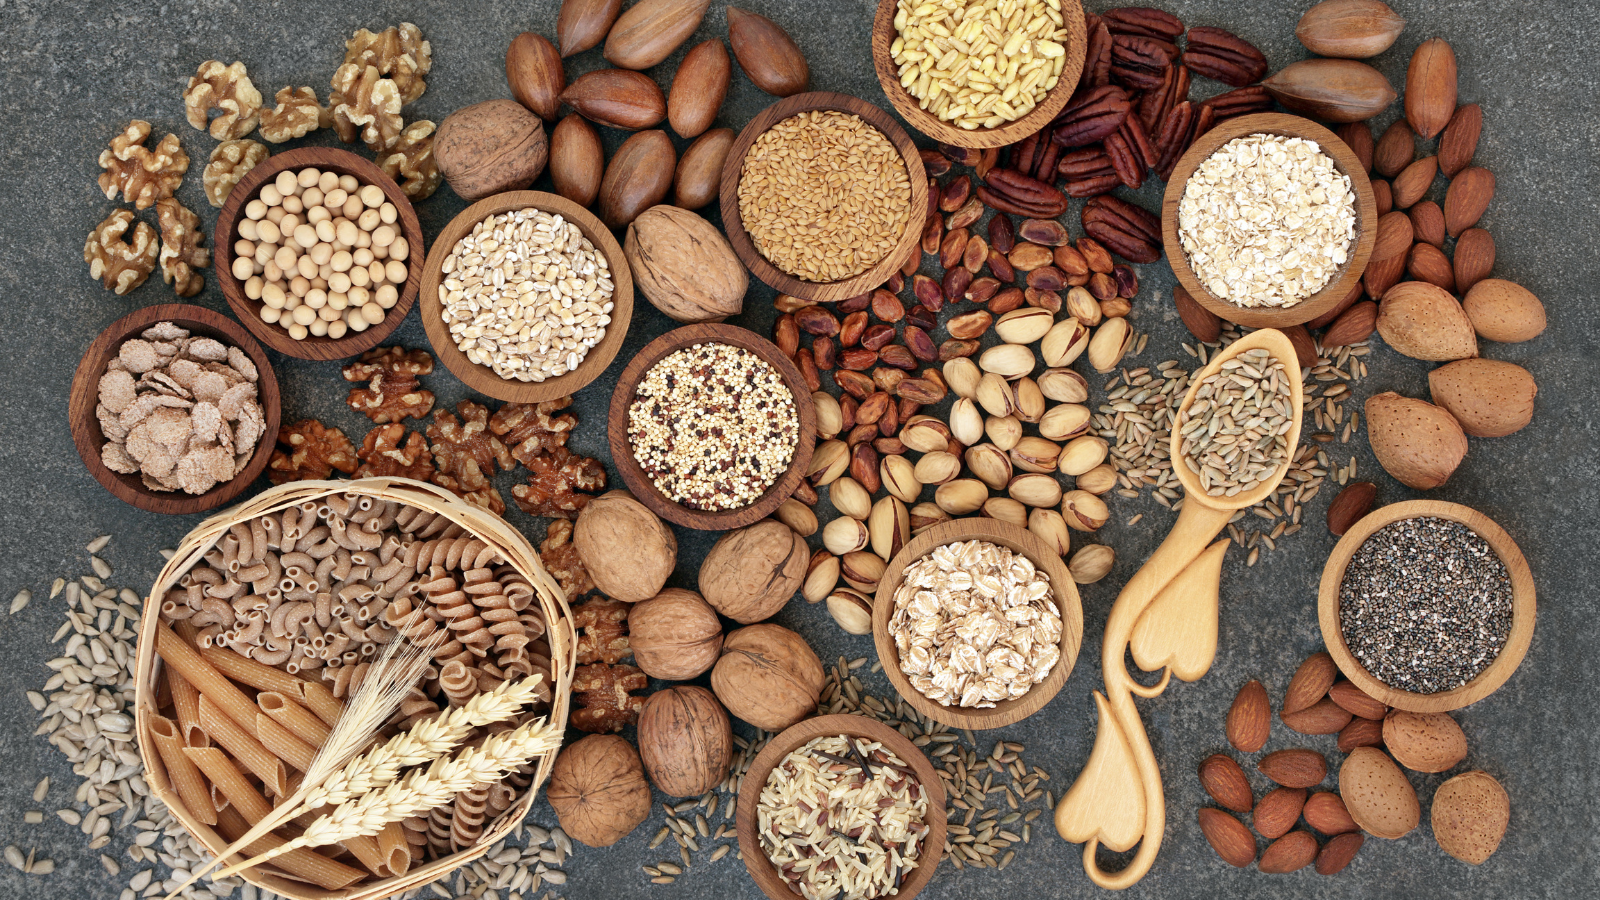 Food with high fiber content for a healthy plant-based diet with whole wheat bread, whole grain pasta, nuts, seeds, legumes, grains and cereals.